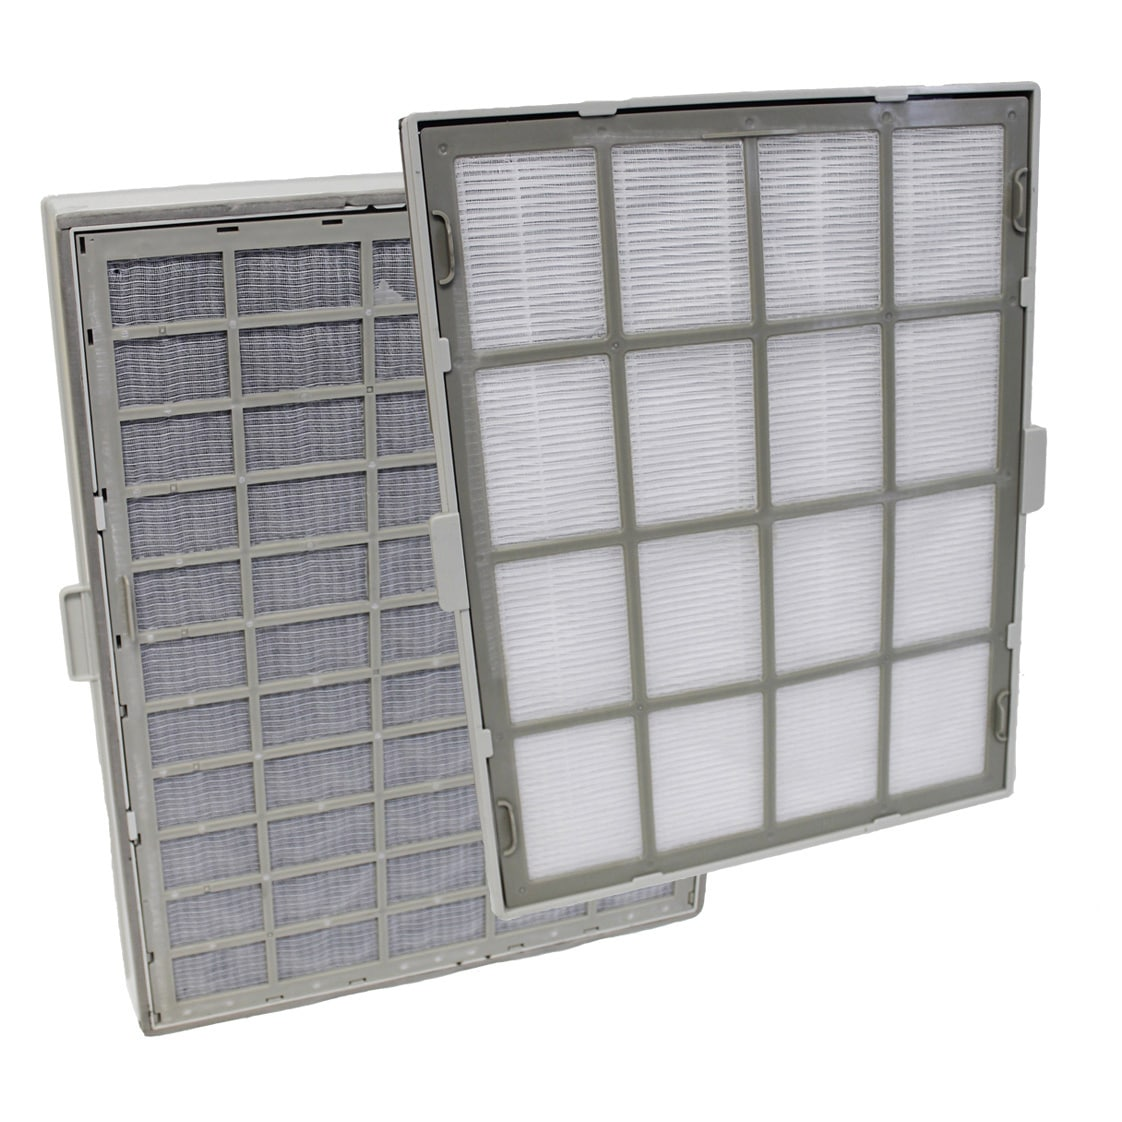 Crucial Winix-compatible Size 21 Air Filter and Cassette ...